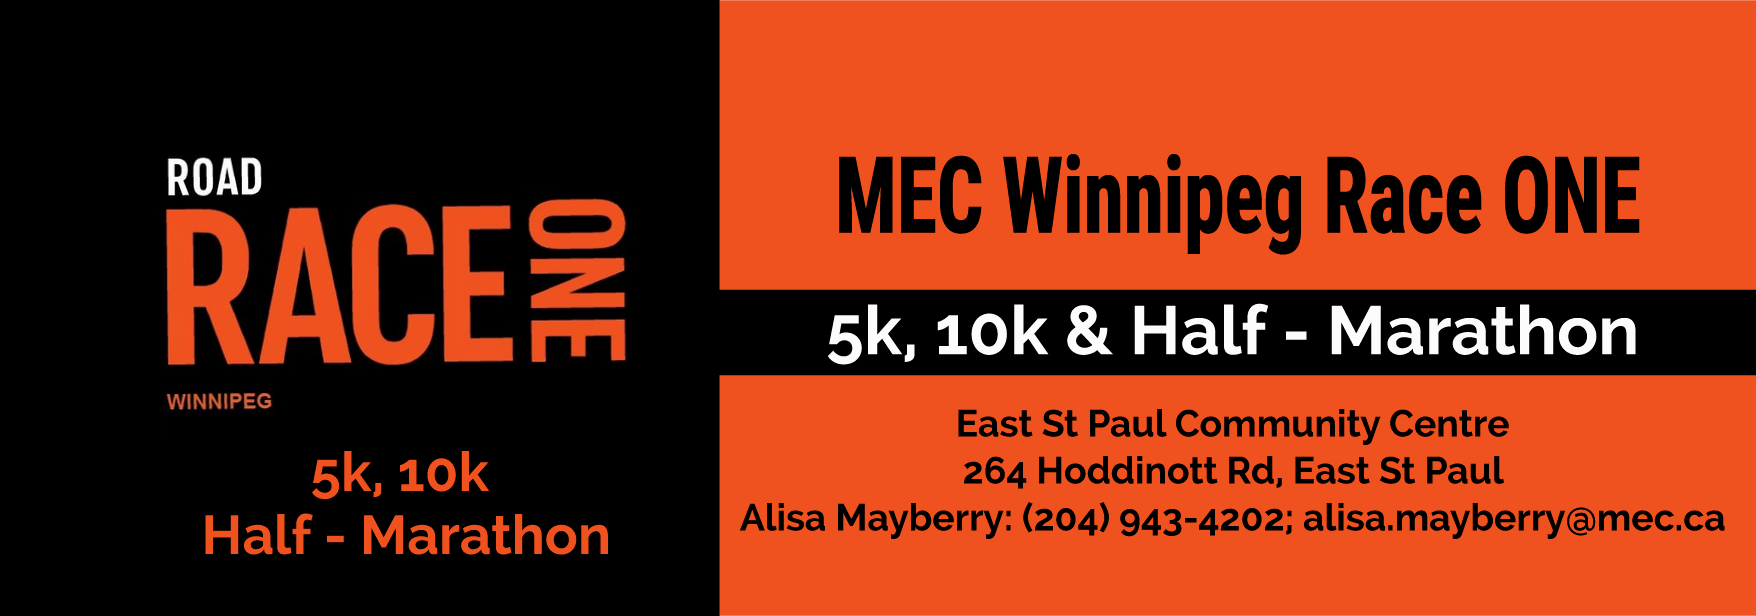 MEC Winnipeg Race One